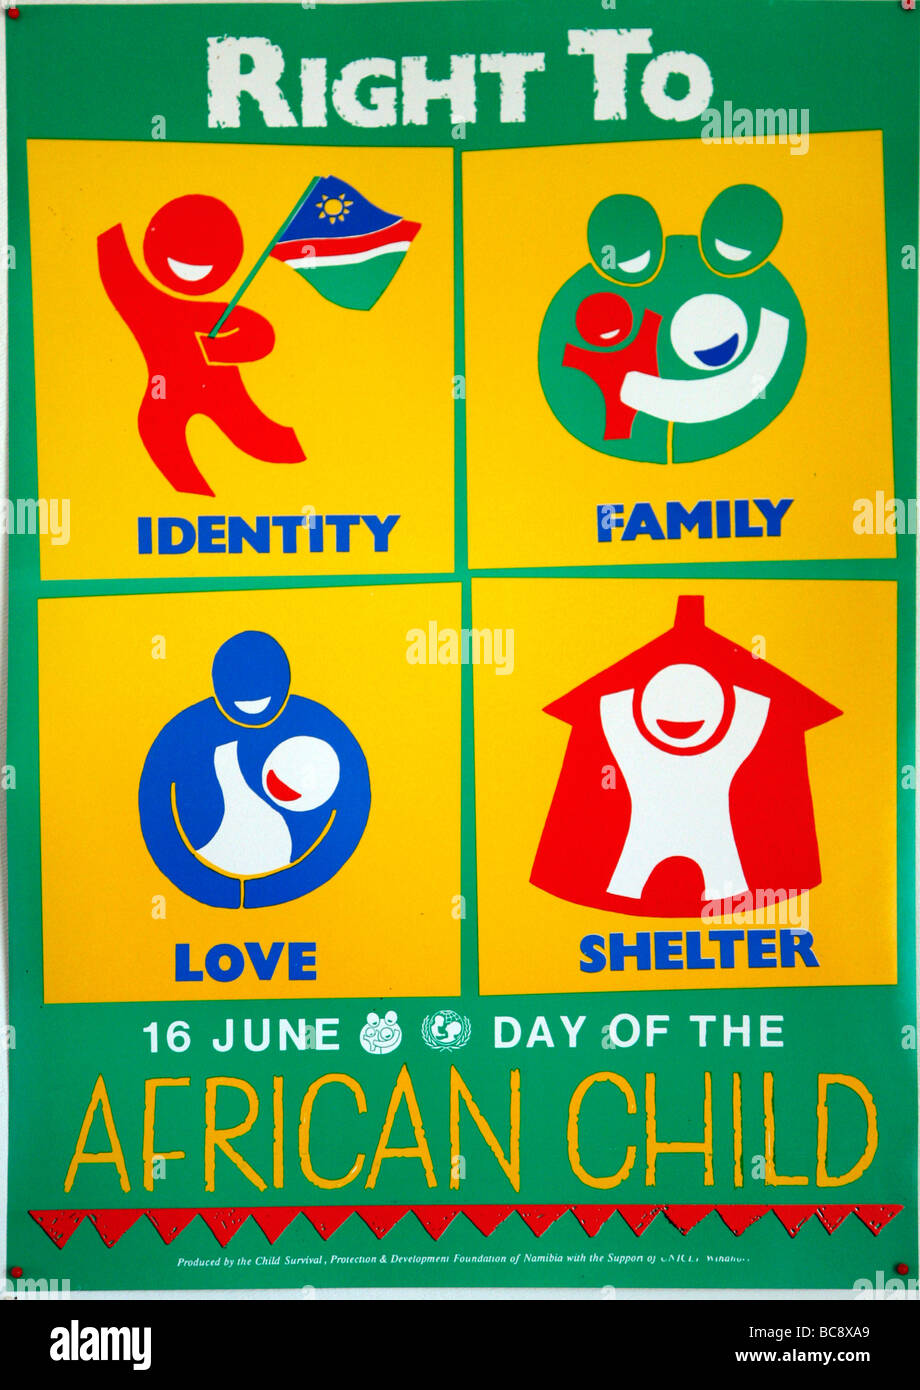 Painet jj1782 people child person kid namibia rights african 2 child person kid namibia rights african poster 2 Stock Photo